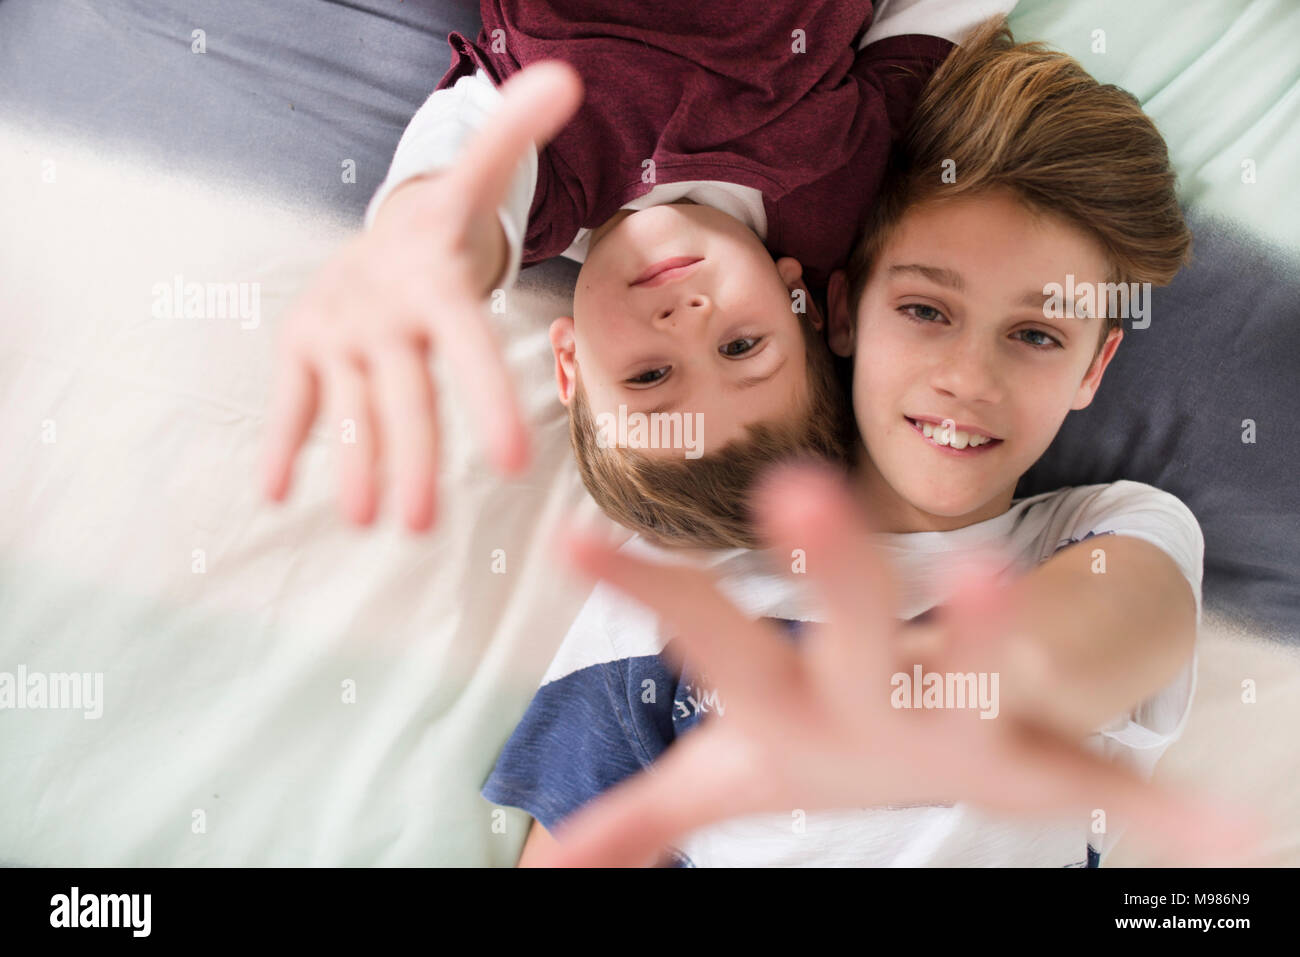 Top view of two smiling brothers lying on bed reaching out their hands - Stock Image